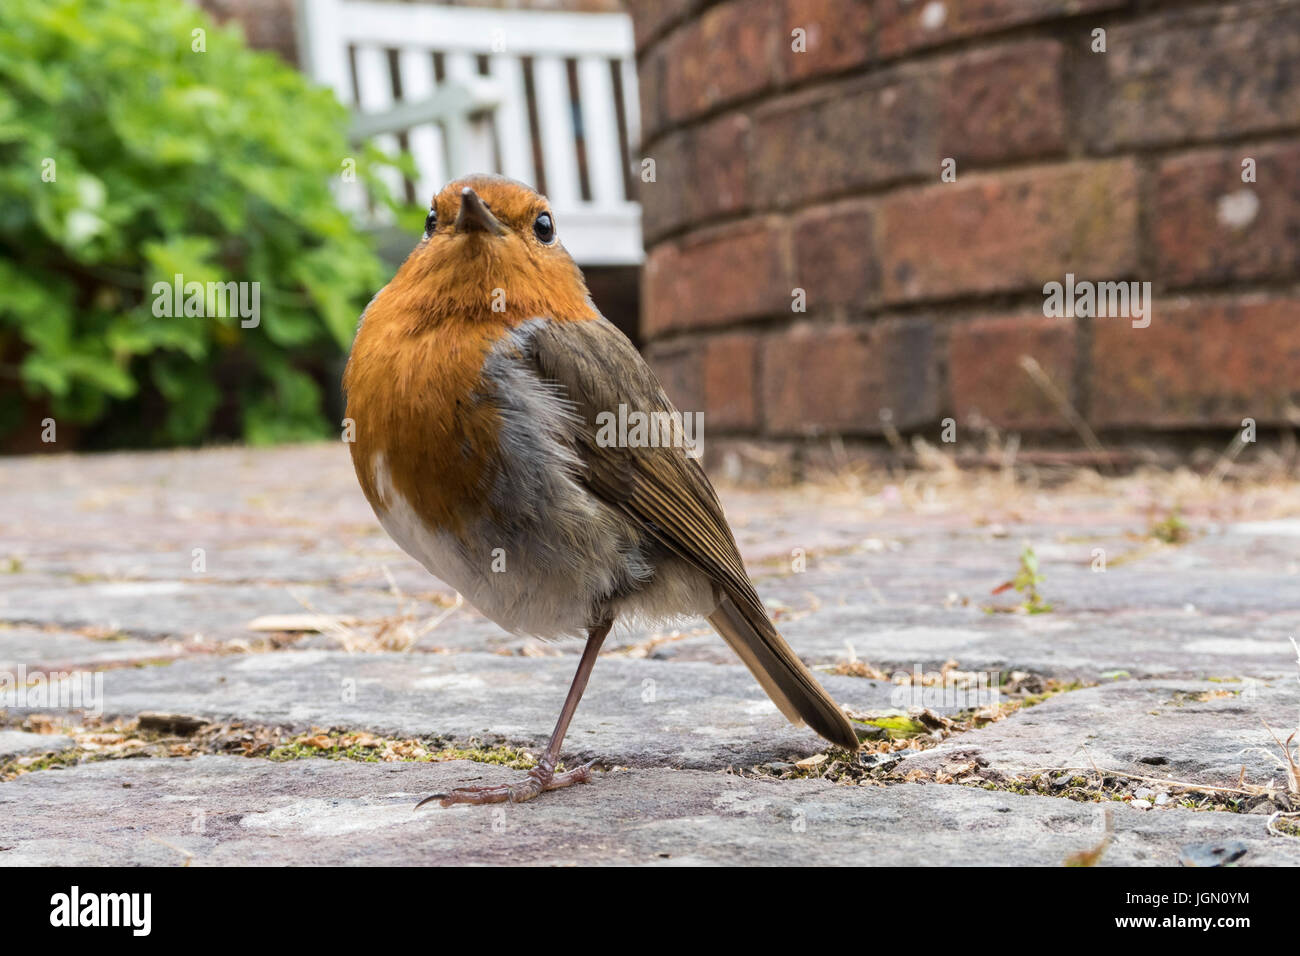 a-robin-bird-standing-on-one-leg-erithac